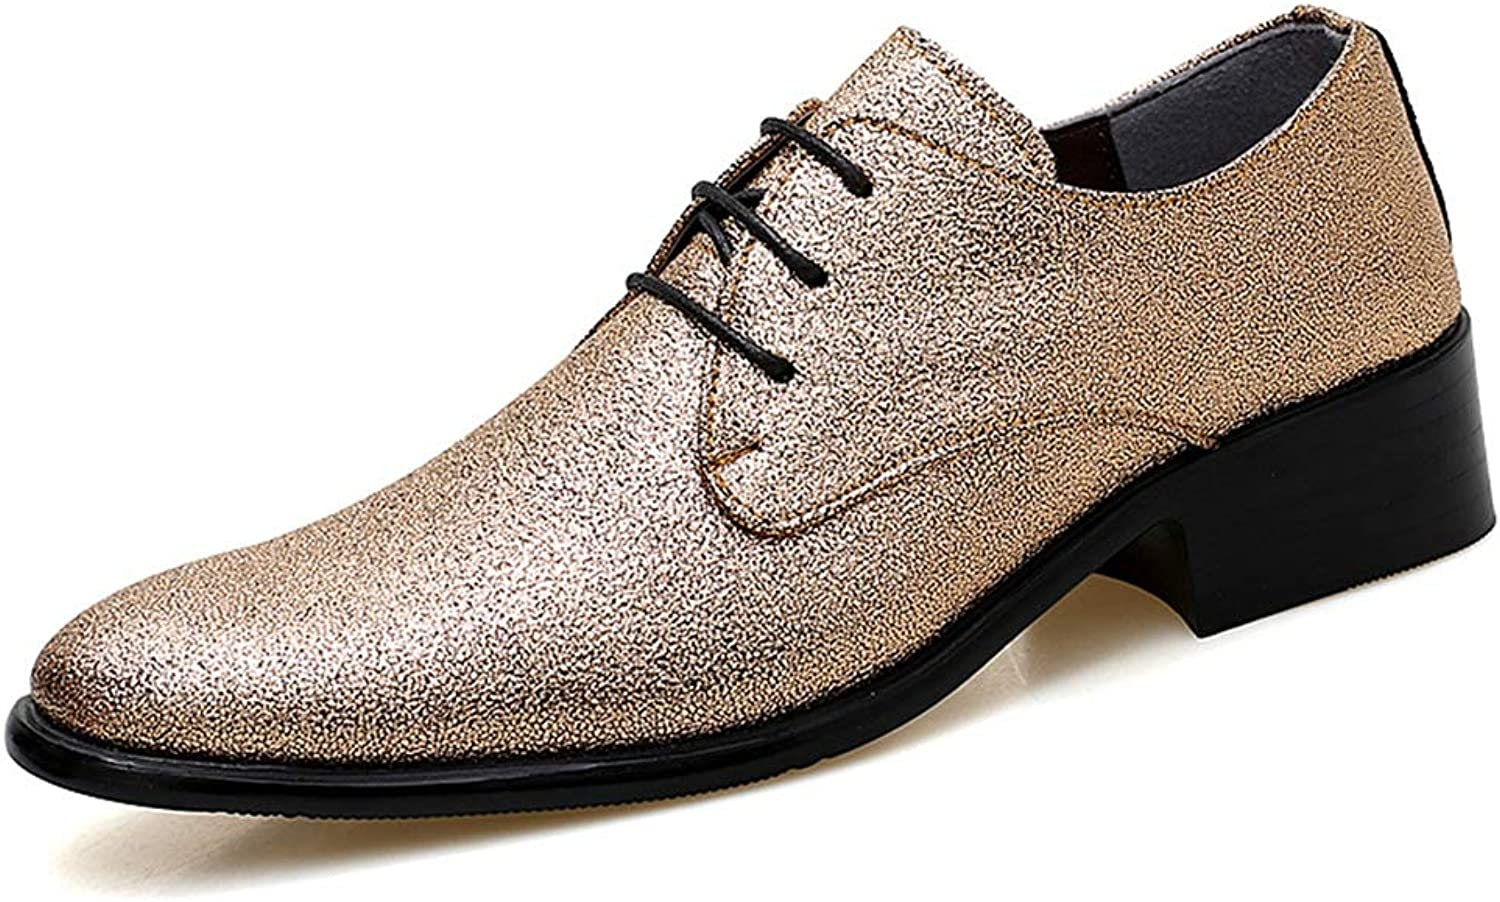 CHENDX shoes, Men's Fashion Low Top Lace-up Oxford Casual Personality colorful Stylish Men Pointed Toe Formal shoes (color   gold, Size   8 UK)